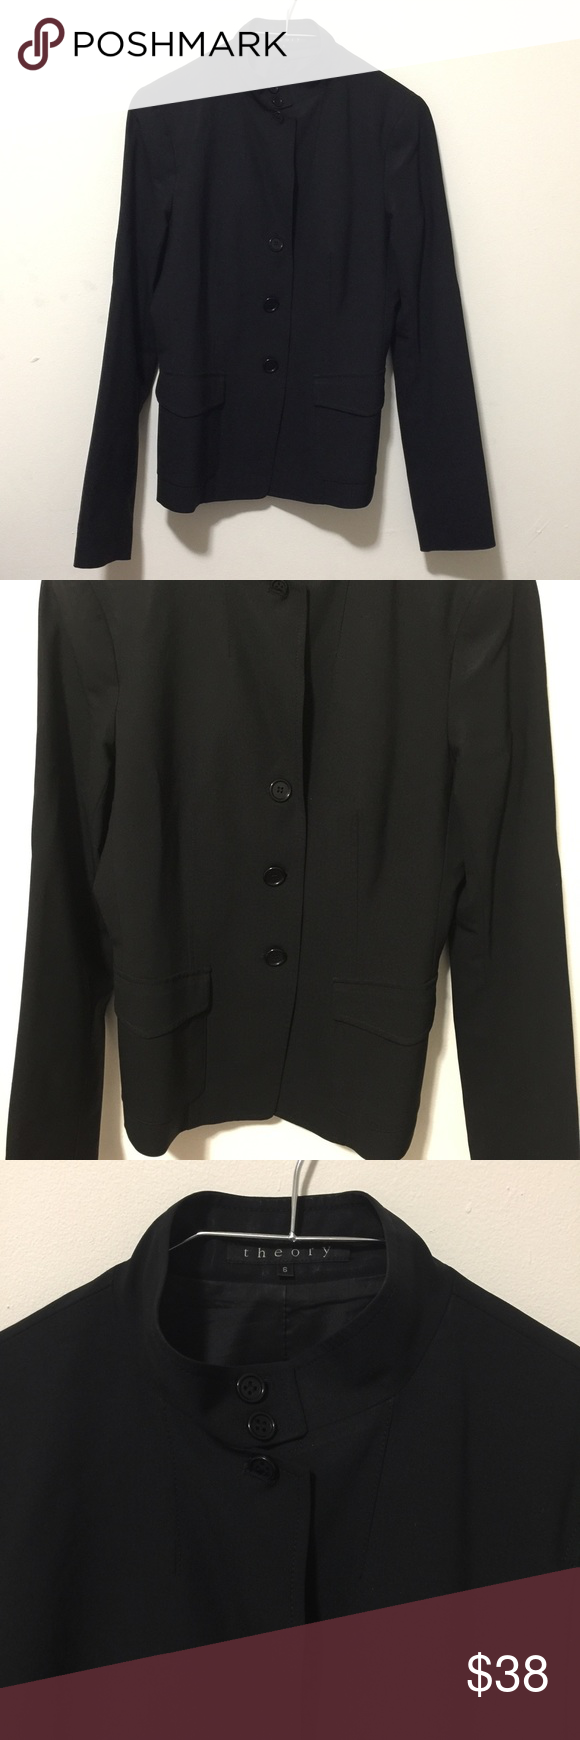 Theory Black Glossy Blazer Motor Style Size 6 Excellent Used Condition No Flaws 6 Button Black Glossy Shimmering Blazer Size 6 Ar Clothes Design Style Blazer